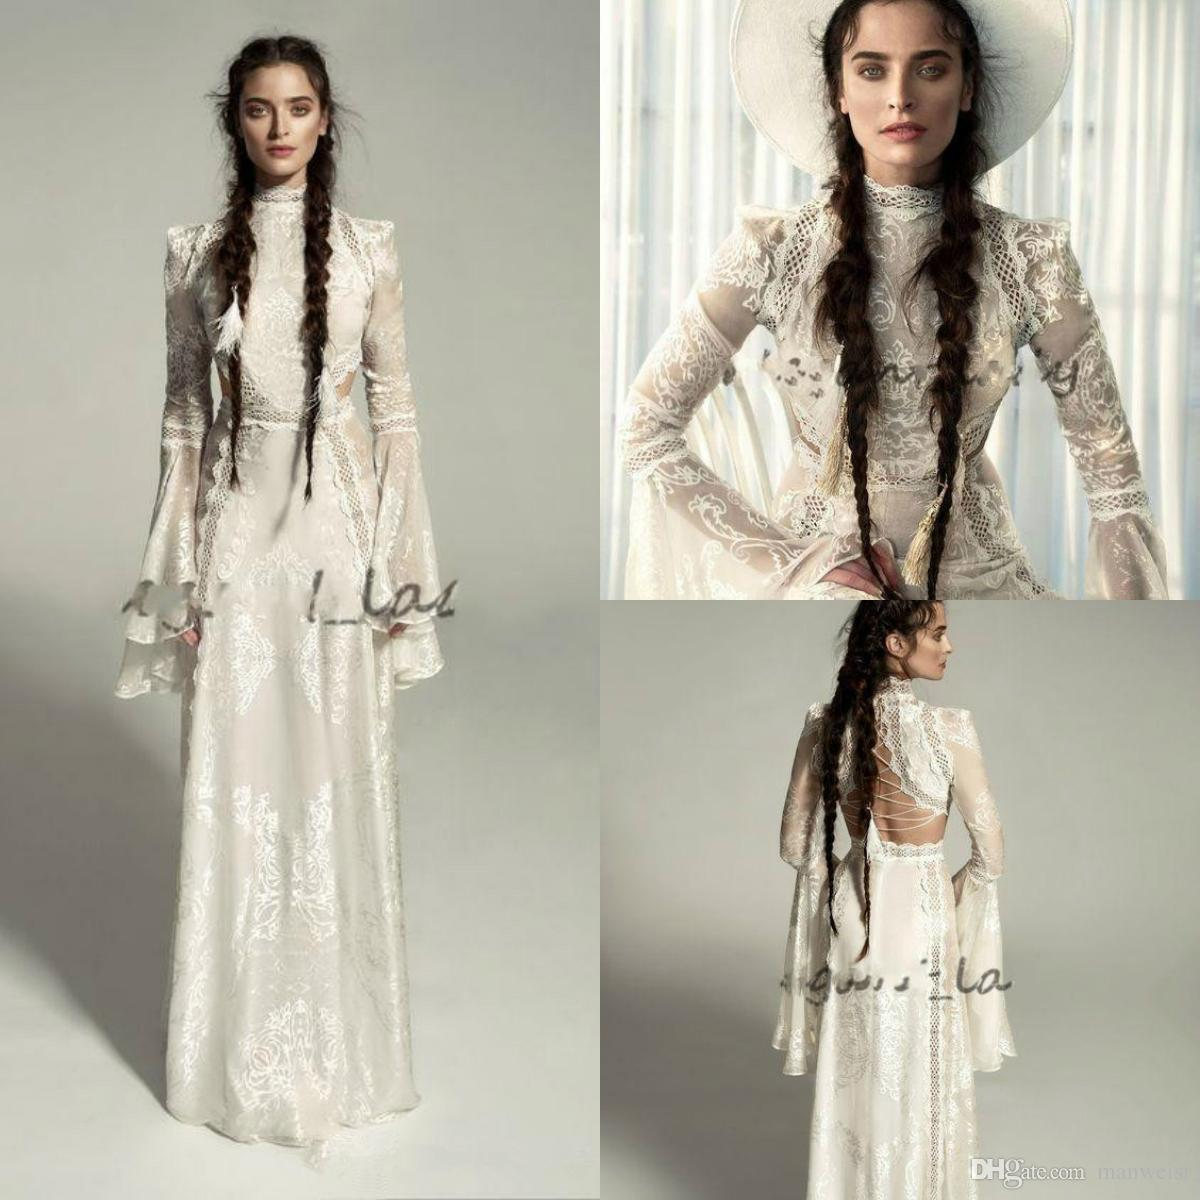 Meital Zano 2019 Medieval Wedding Dresses with Bell Long Sleeves Vintage Crochet Lace High Neck Gothic Queen Bridal Wedding Gowns